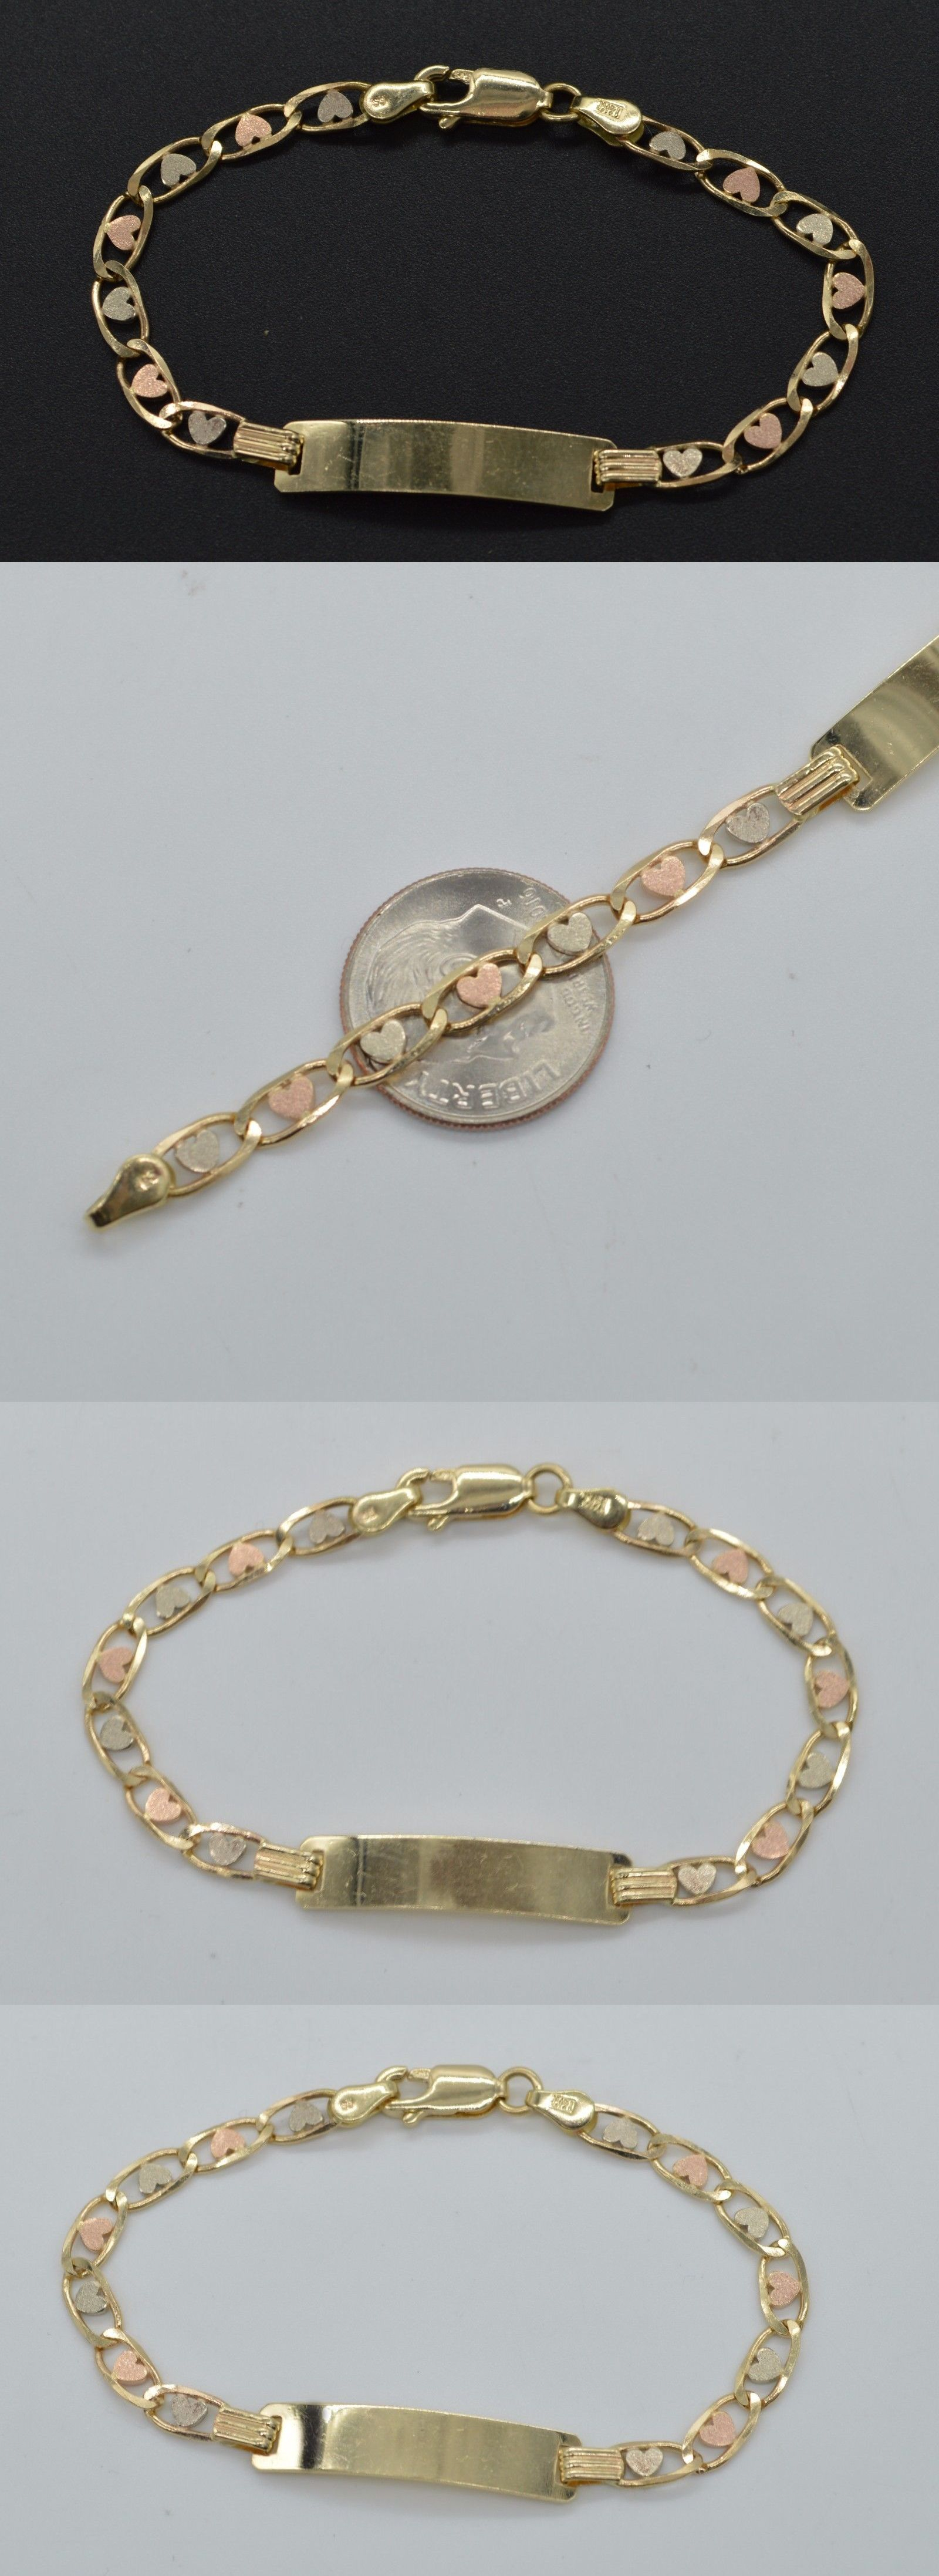 Bracelets as k tricolor solid heart gold id chain